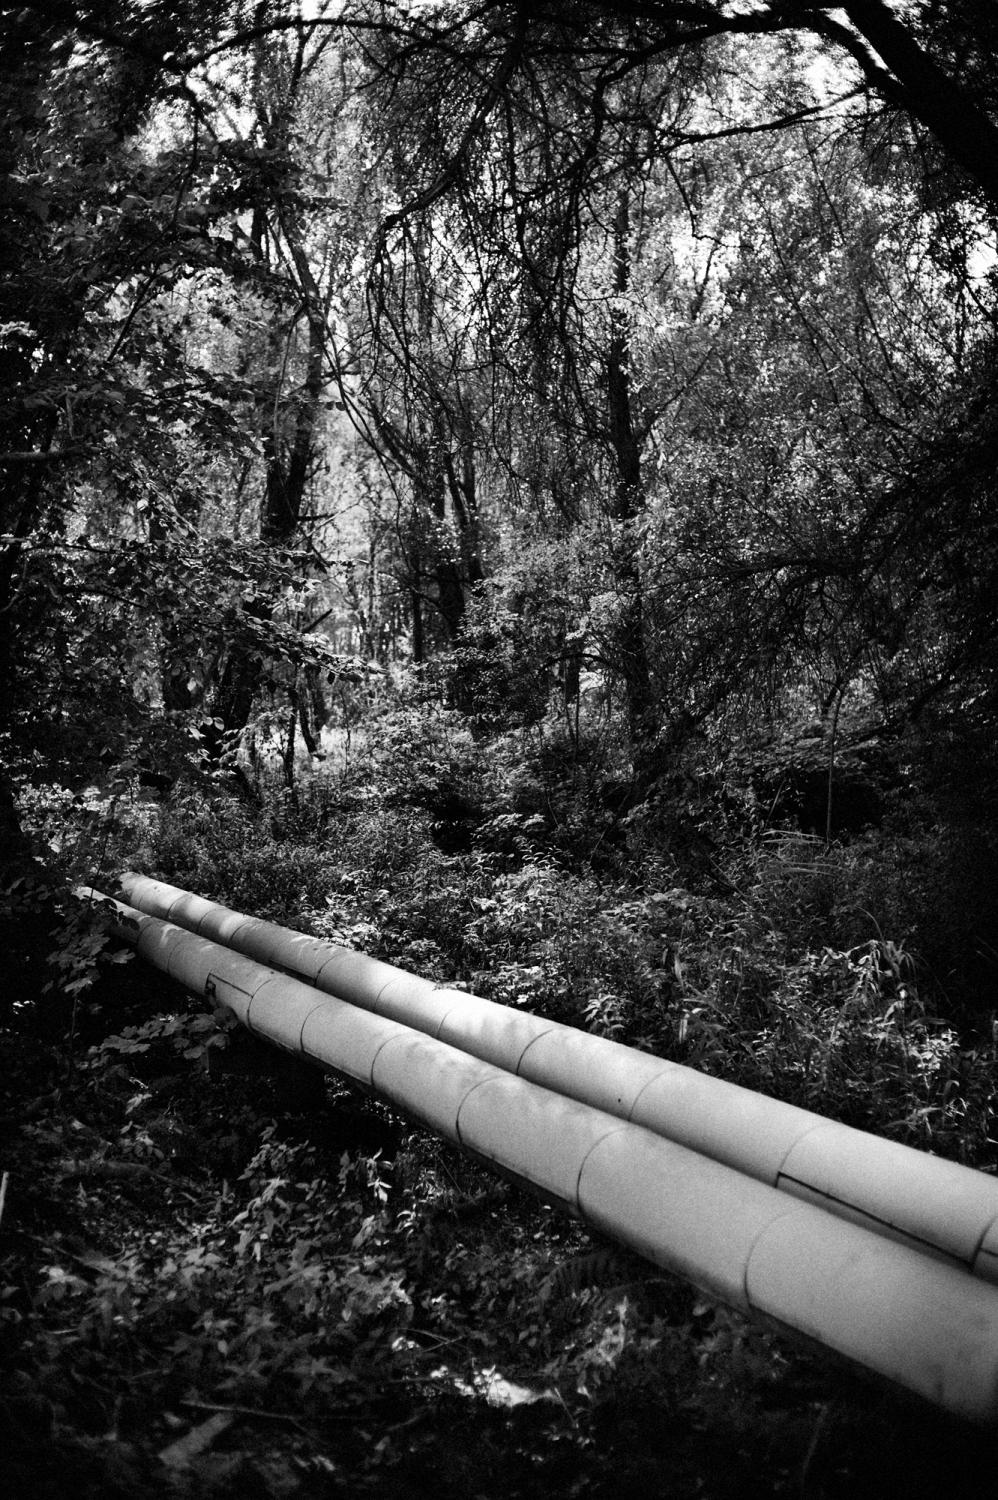 "Poland, Silesia Region, Zabrze. September 2009. Sosnica- Makoszowy Coal Mine. Heat pipes in the woods near the Sosnica- Makoszowy Coal Mine. Sosnica- Makoszowy Coal Mine arose from merger of two mines, coal mine ""Sosnica"" in Gliwice and coal mine Makoszowy in Zabrze. Levels of mining can be found at a depth between 530 and 930 m. The ability of mining amounts about 12 000 tons per day, the mining area amounts 28,4 km2.. Nowadays 60% of polish energy comes from burning black coal, the biggest enemy of our climate. Poland is not one of the biggest countriest and doesnt have big population but contributes to climate change and is in first 20 countries that produce biggest amount of CO2. in 2004-2005 polish emmisions increases for more than 2 mln tones Whith China , Australia and Republic of South Africa , Poland belonges to countries that are most dependent on coal. Only 3% of polish energy comes from climate-friendly sources. Poland is Eupean leader in power industry energy-consuming . (Polish power industry consumes biggest amount of energy to produce energy)."